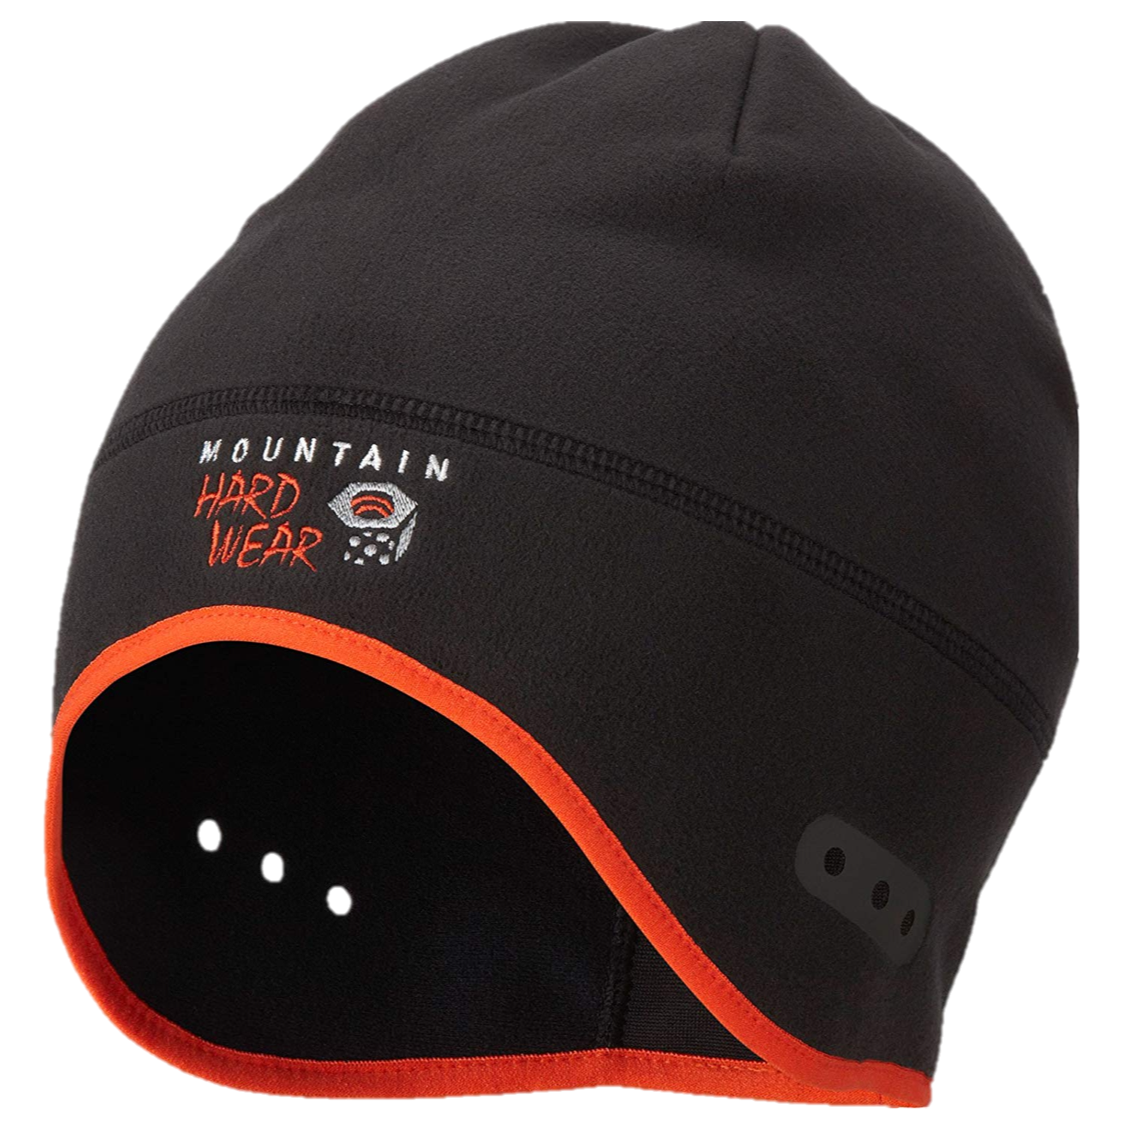 Warm hat - Mountain Hardwear Microdome BeanieRead why→